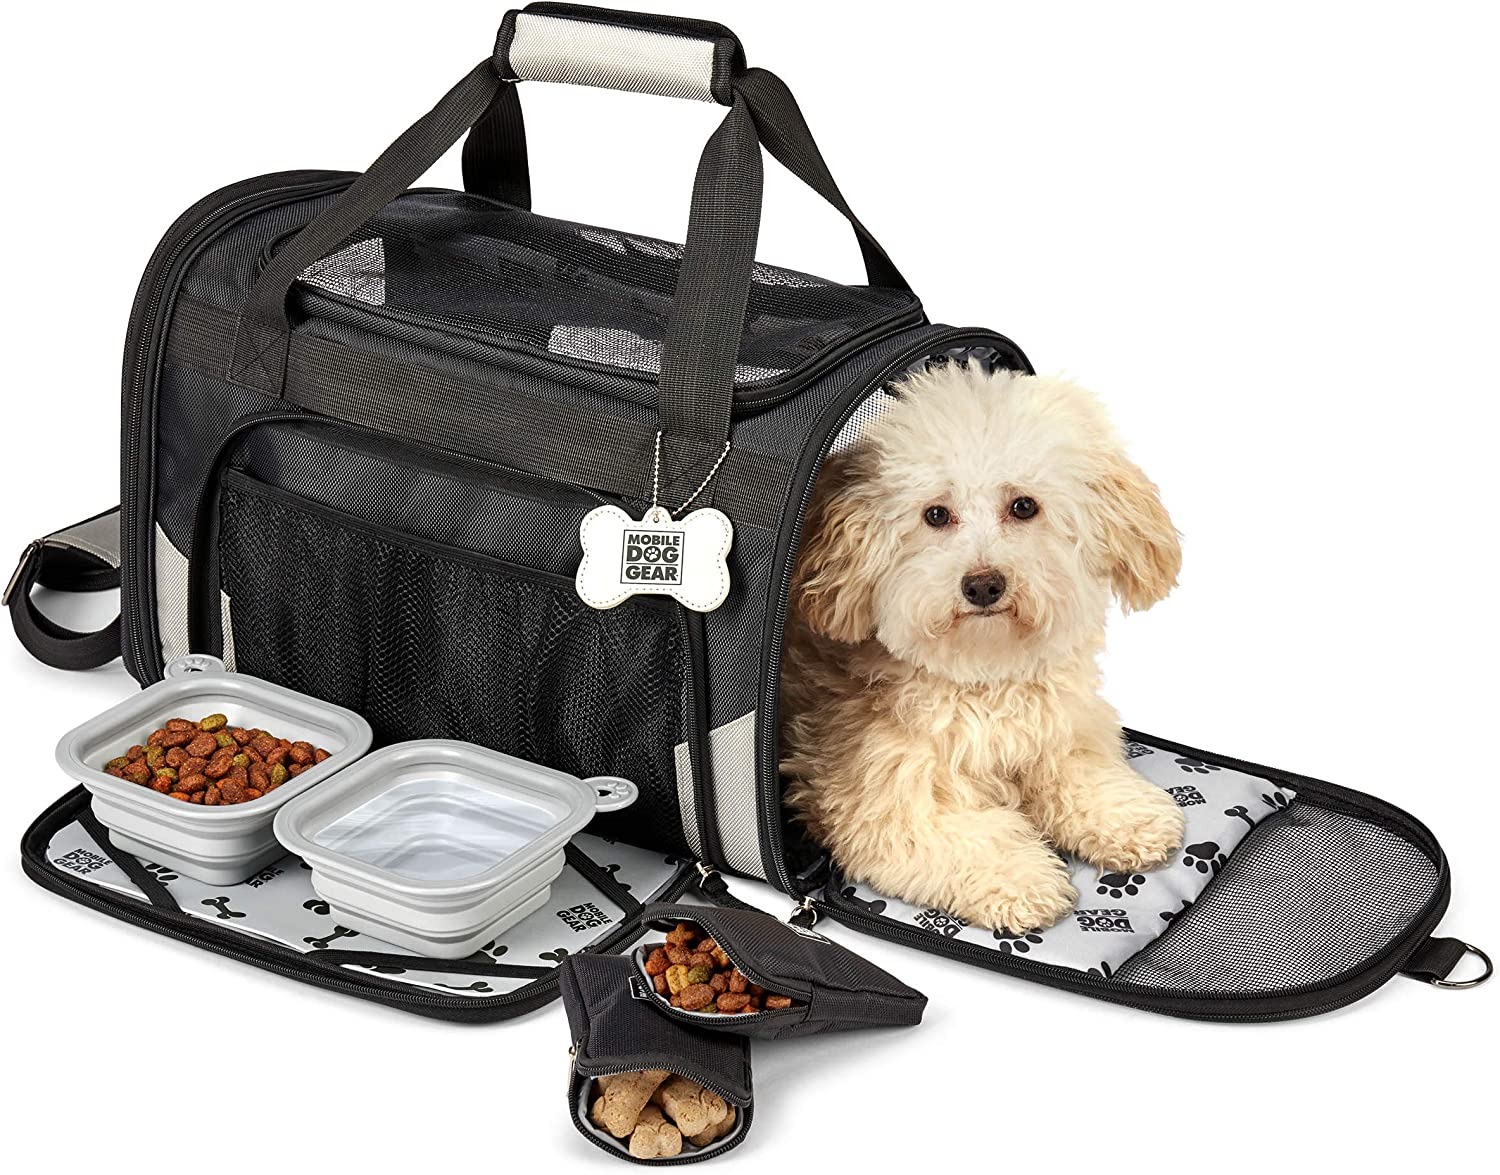 Mobile Dog Gear, Pet Carrier Plus, Small Dog Carrier Includes 2 Lined Food Carriers, Placemat and 2 Collapsible Dog Bowls